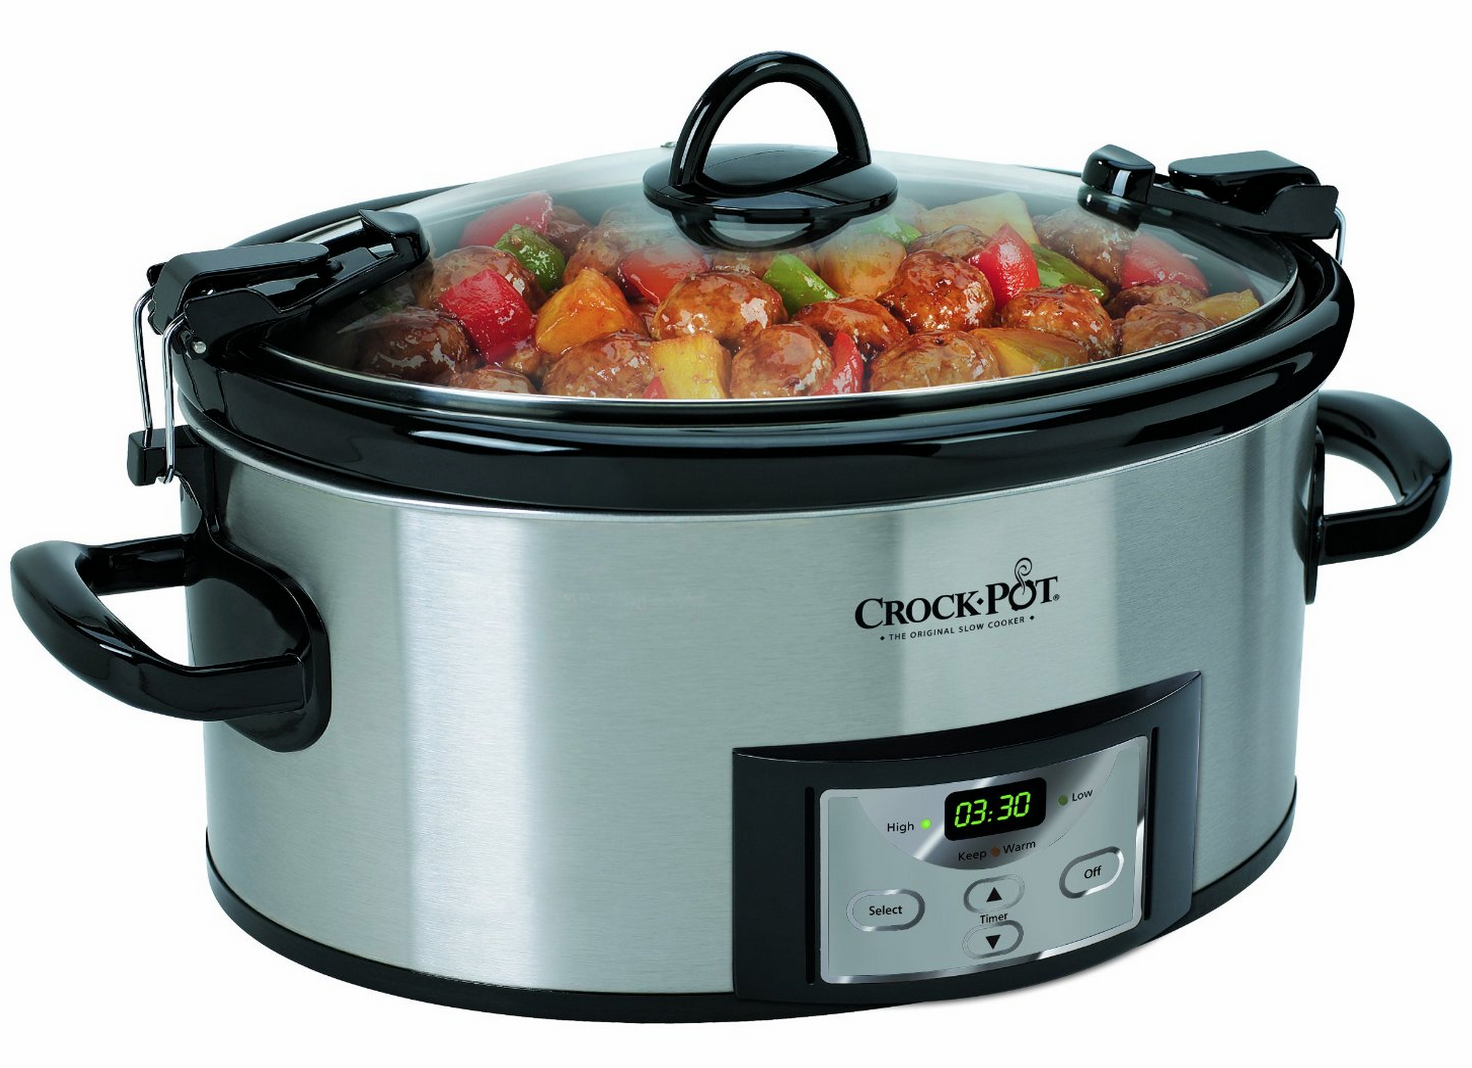 Crock-Pot Programmable Cook and Carry Oval Slow Cooker Only $35.69 (Reg. $59.99!) + FREE Shipping!